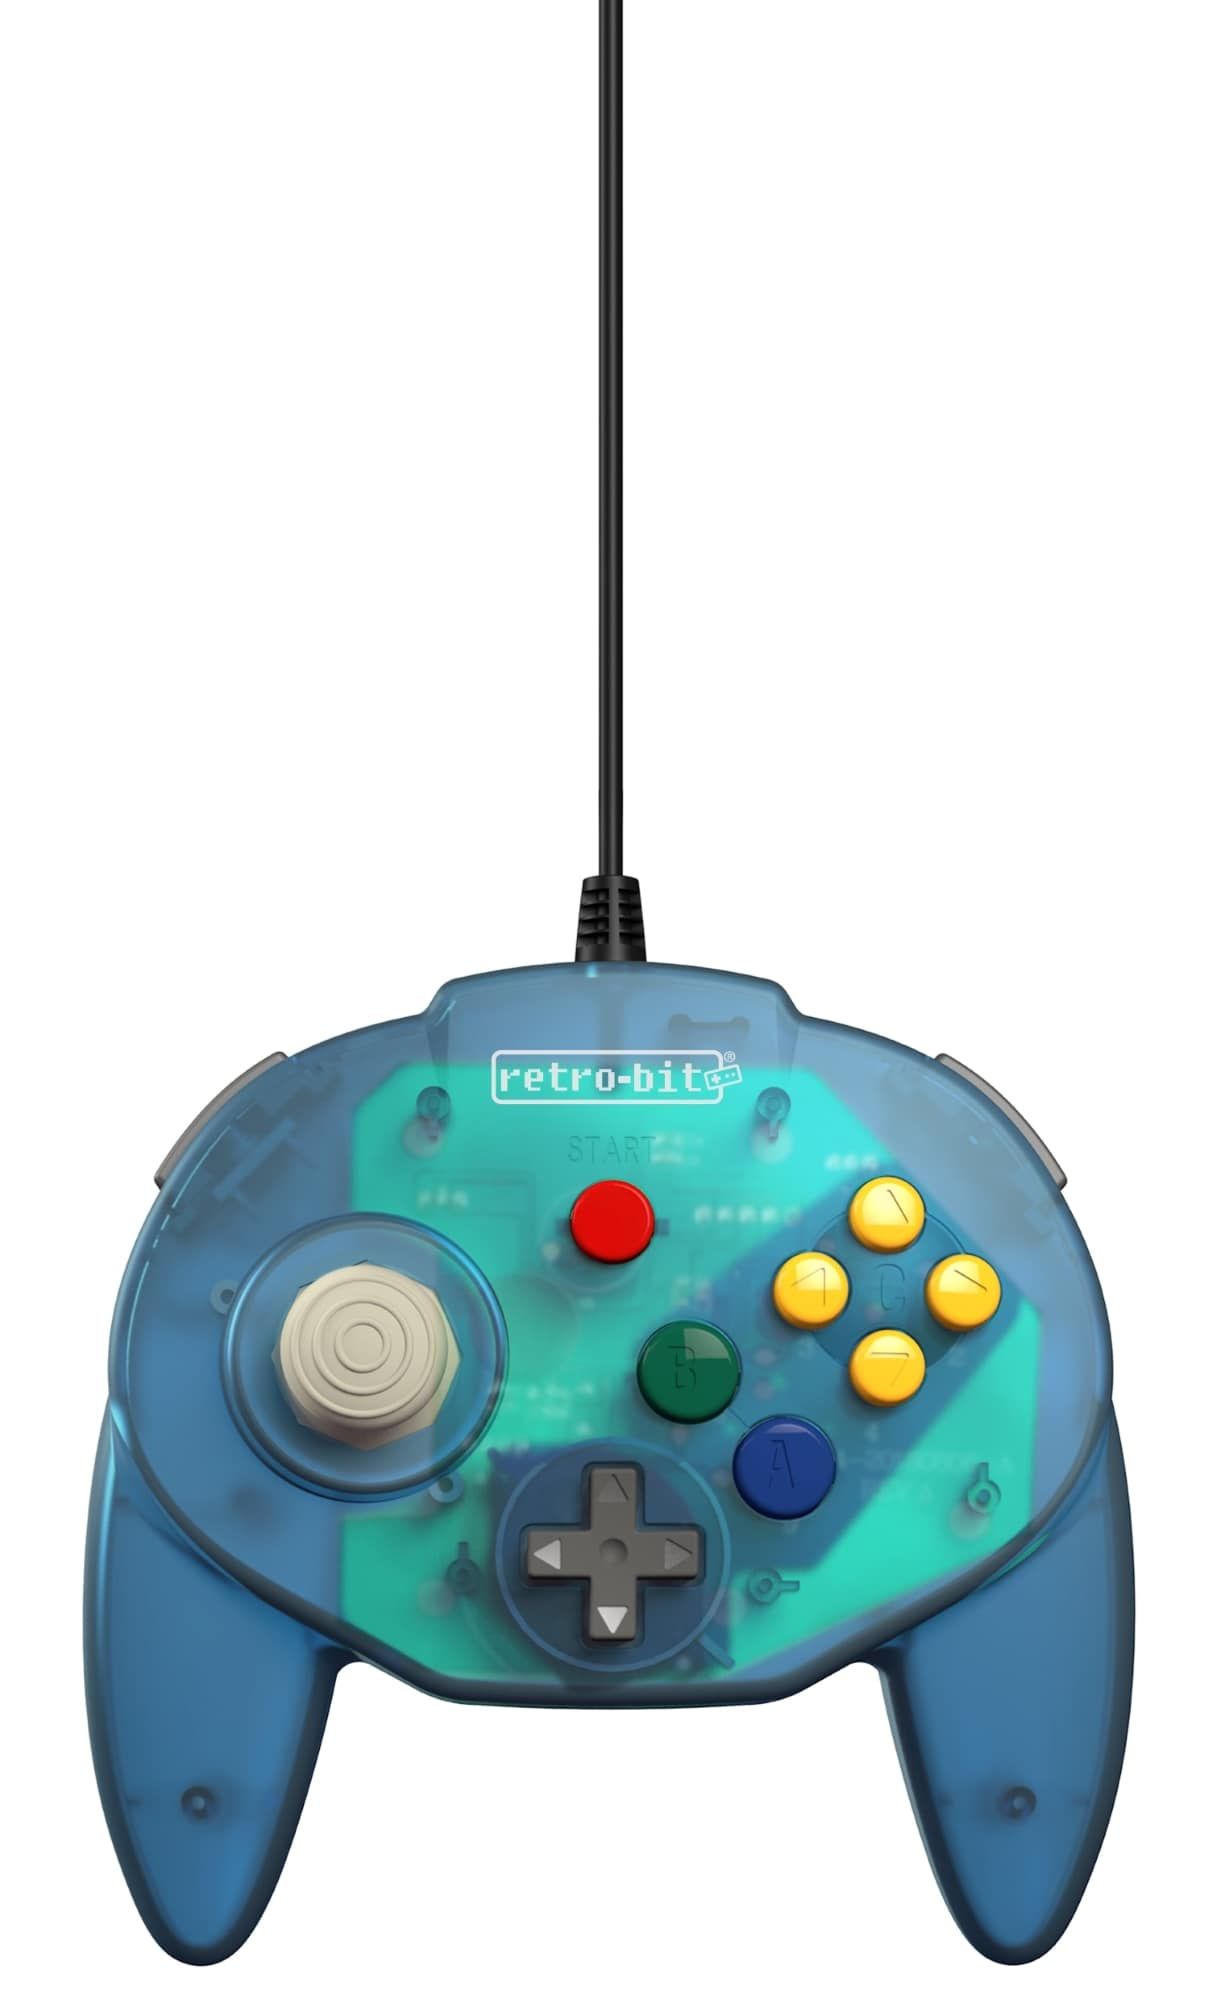 Retro-Bit Tribute 64 USB (Ocean Blue)